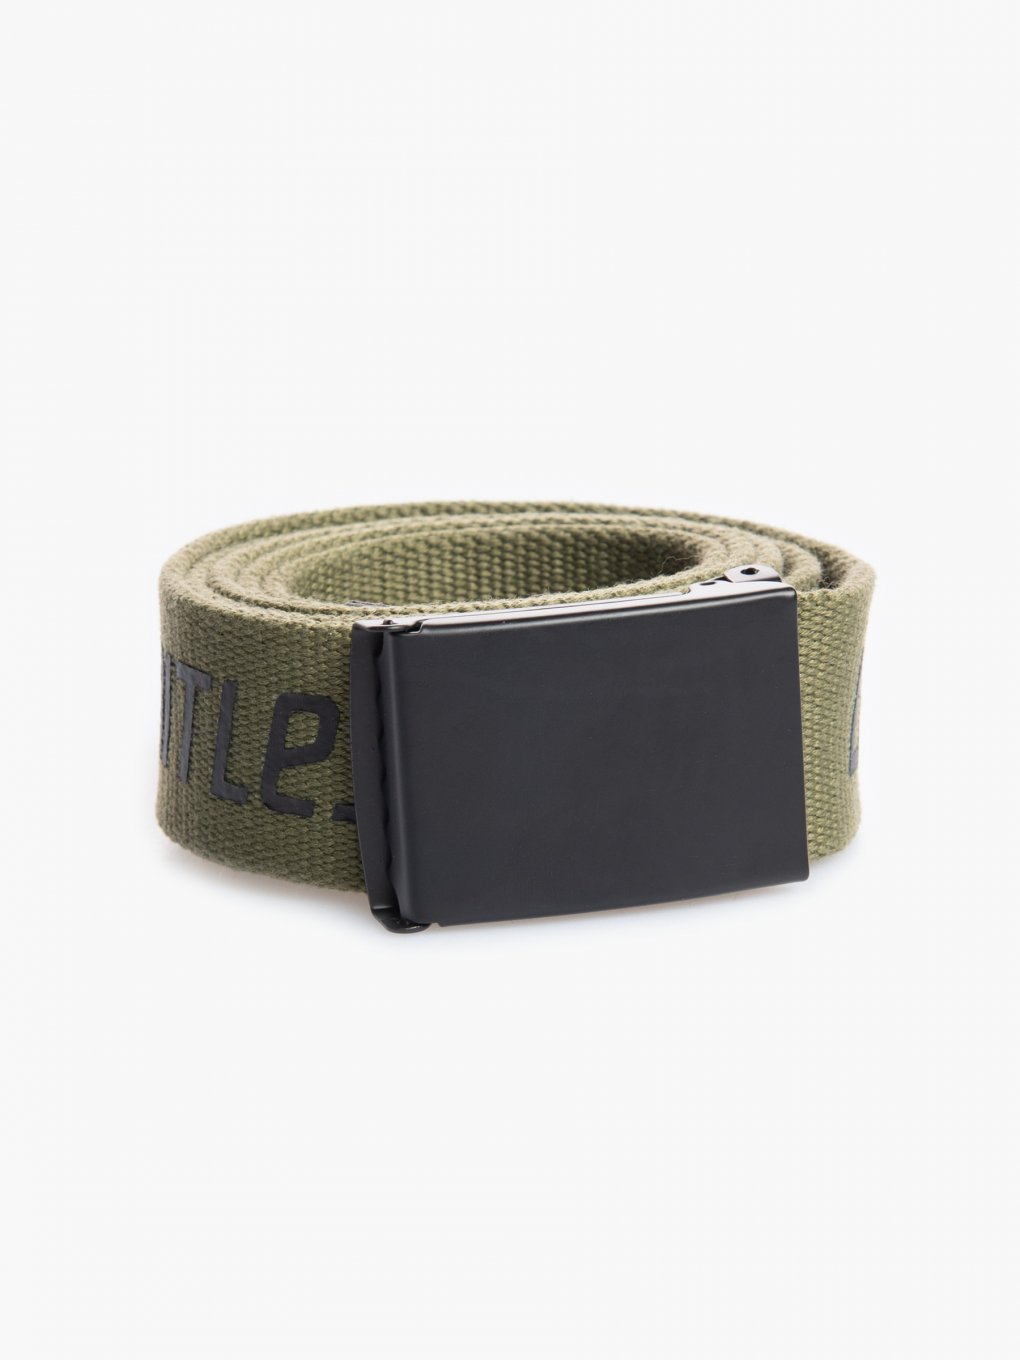 Canvas belt with metal buckle